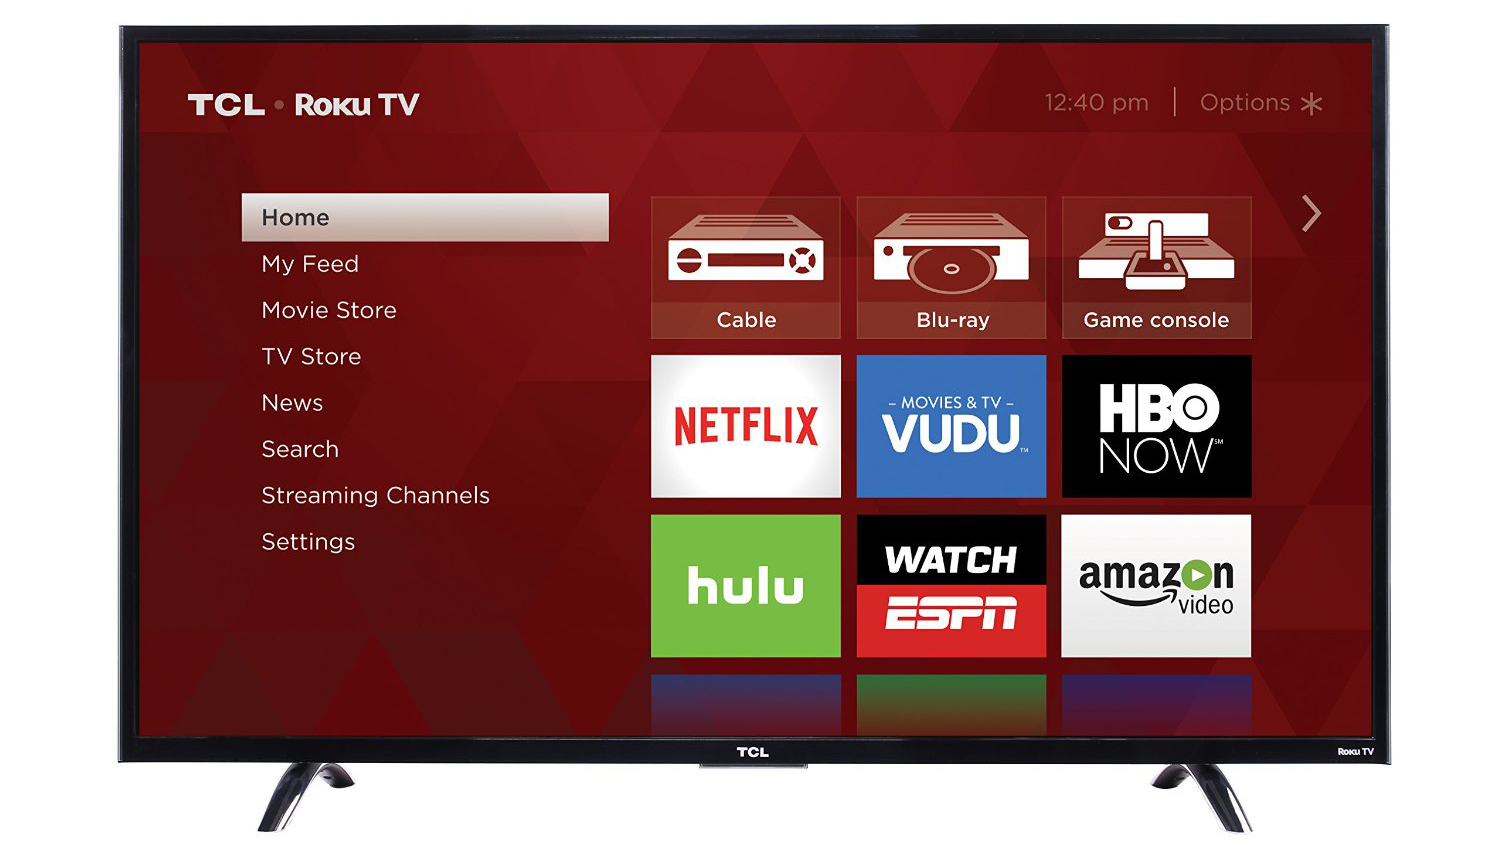 best cheap 4k tv, cheap 4k tv, best 4k tv, 4k tv, 4k tv price, 4k tv deals, affordable 4k tv, best 4k tv deals, best value 4k tv